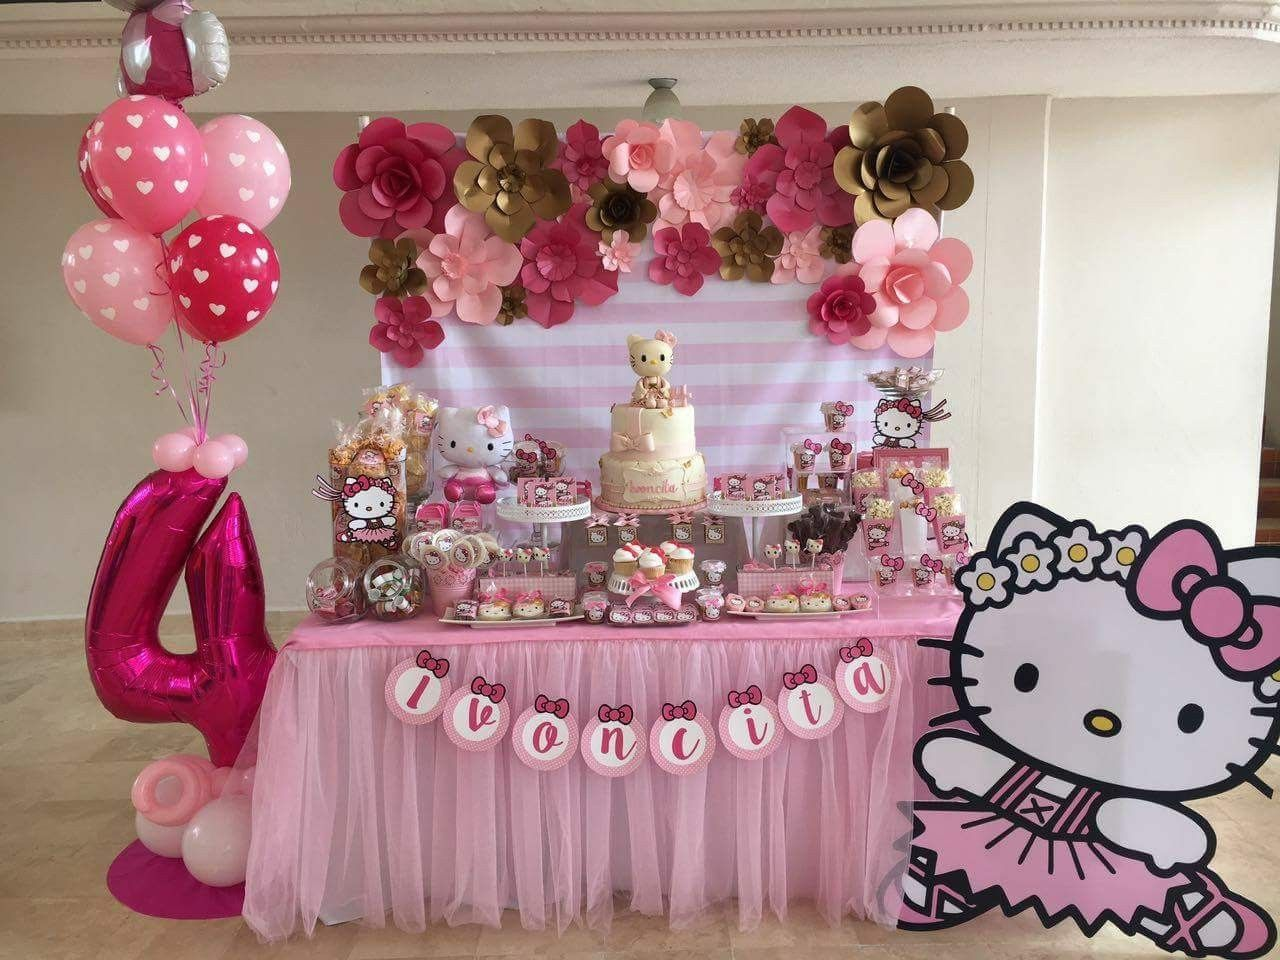 Pin By Alexis On Hello Kitty Hello Kitty Birthday Party Hello Kitty Birthday Decorations Hello Kitty Theme Party